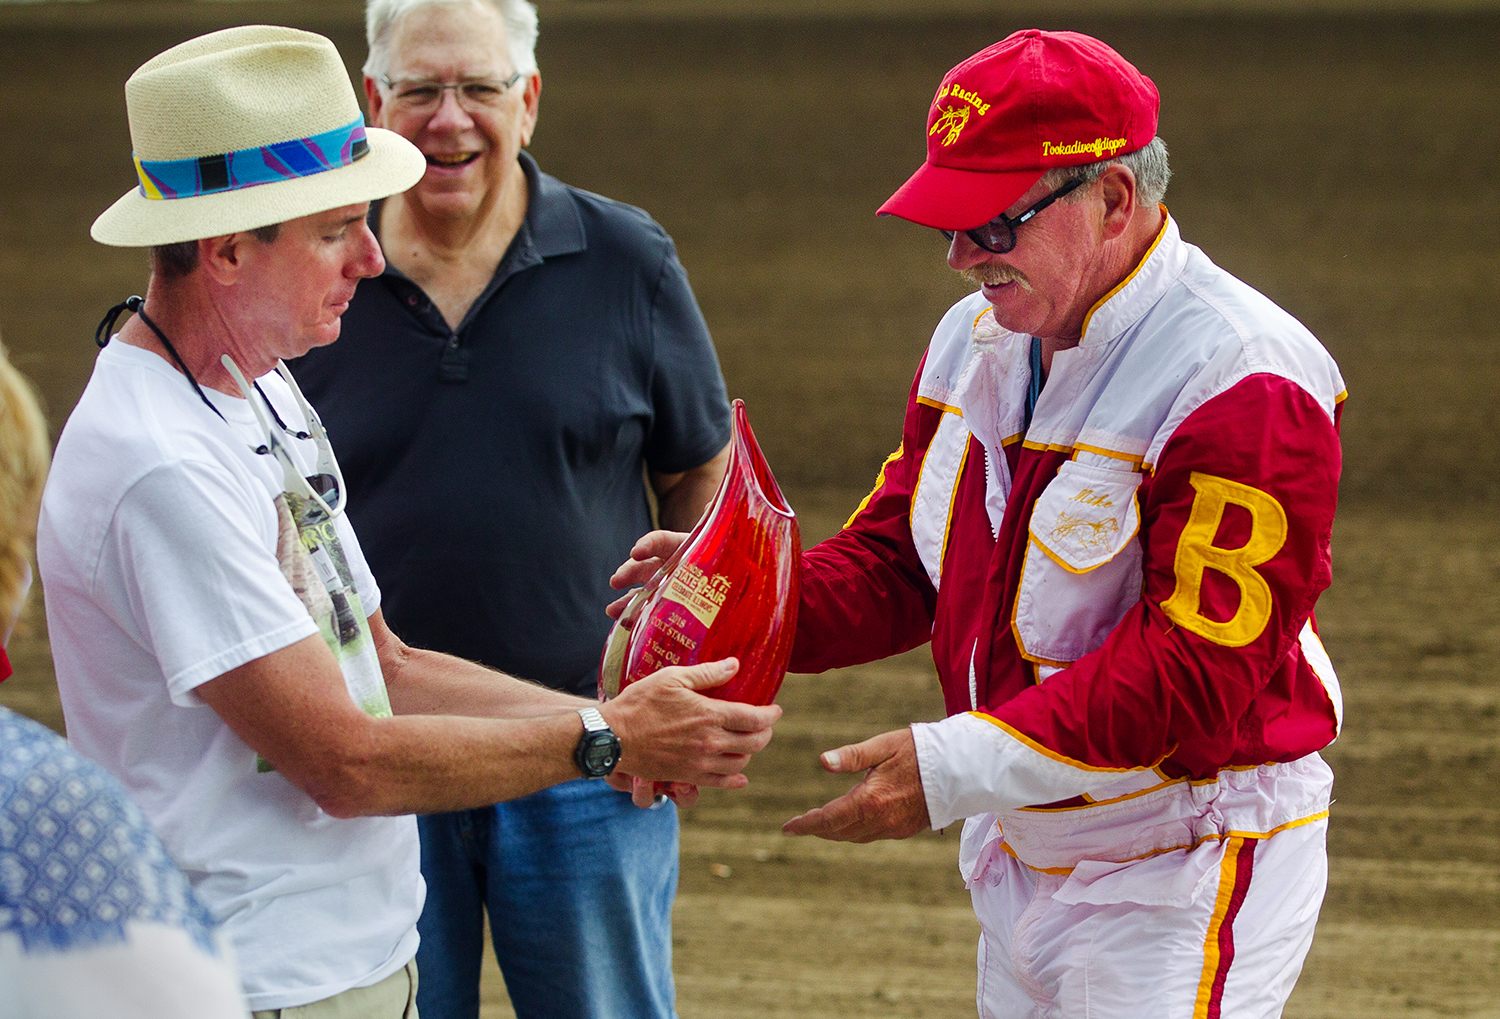 Mark Brown hands trainer Mike Brink the trophy after Michael Oosting drove their horse Allbeastnobeauty to a win in the Illinois State Fair Colt Stakes Championship 3 year-old Fillies at the Illinois State Fair Wednesday, Aug. 15, 2018. The horse is owned locally by Brink, Brown and Josh Carter. [Ted Schurter/The State Journal-Register]